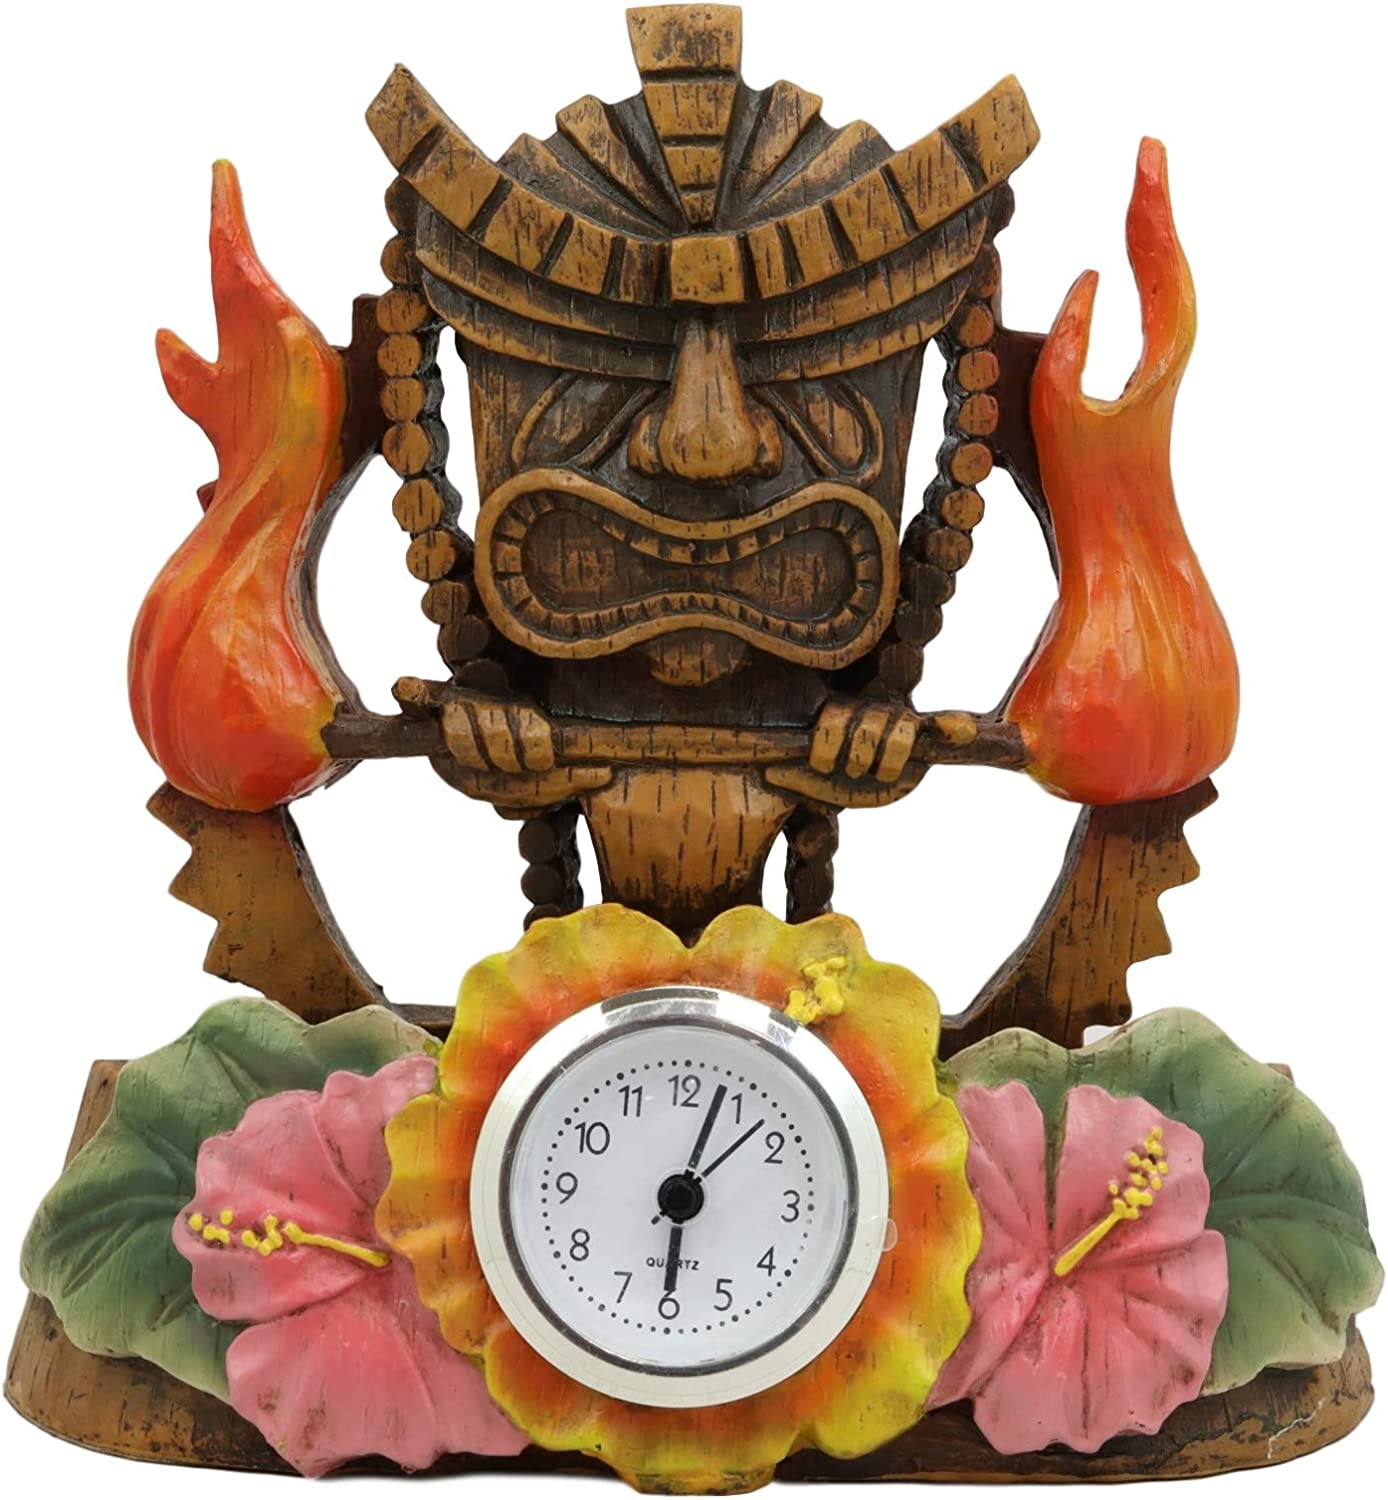 "Ebros Gift Tropical Colorful Polynesia Tiki Fire Goddess Pele Bedside Table Desktop Clock Figurine 7"" Tall Volcano Lightning Wind Deity of Hawaii Sculpture Decorative Clocks Accent"